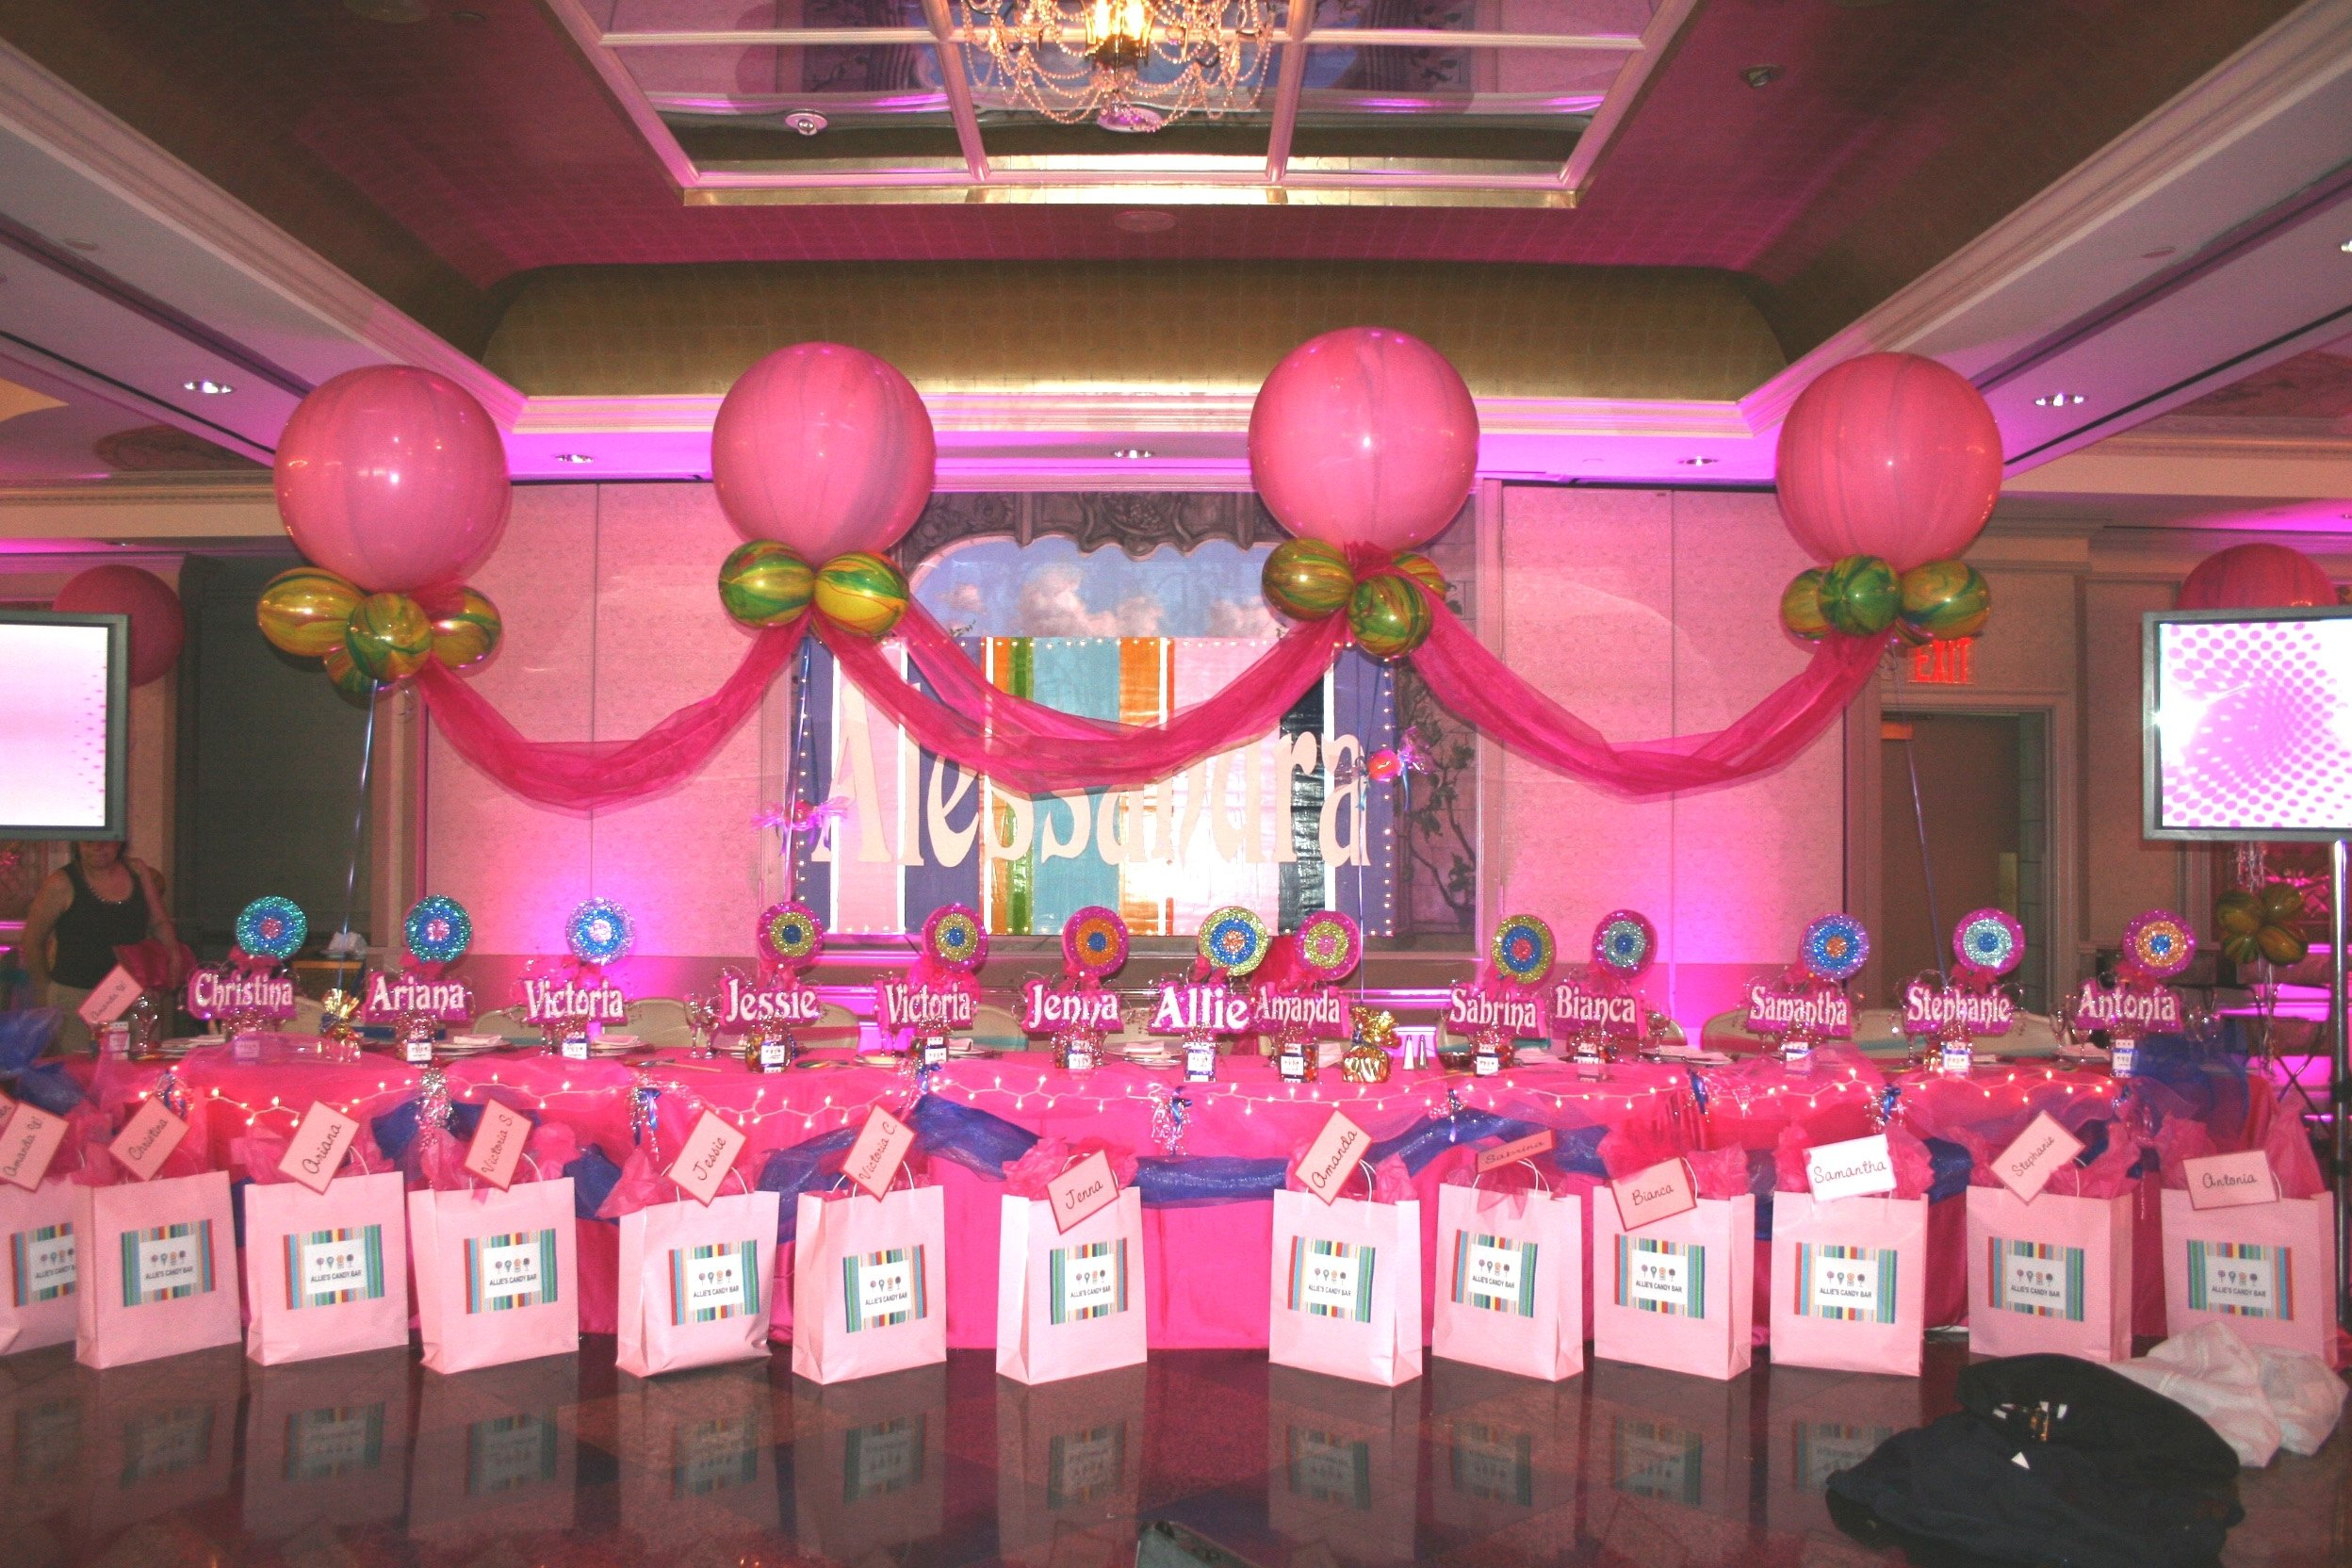 10 Cute Sweet 16 Party Ideas At Home images about my sweet sixteen ideas on pinterest and 16th birthday 6 2020